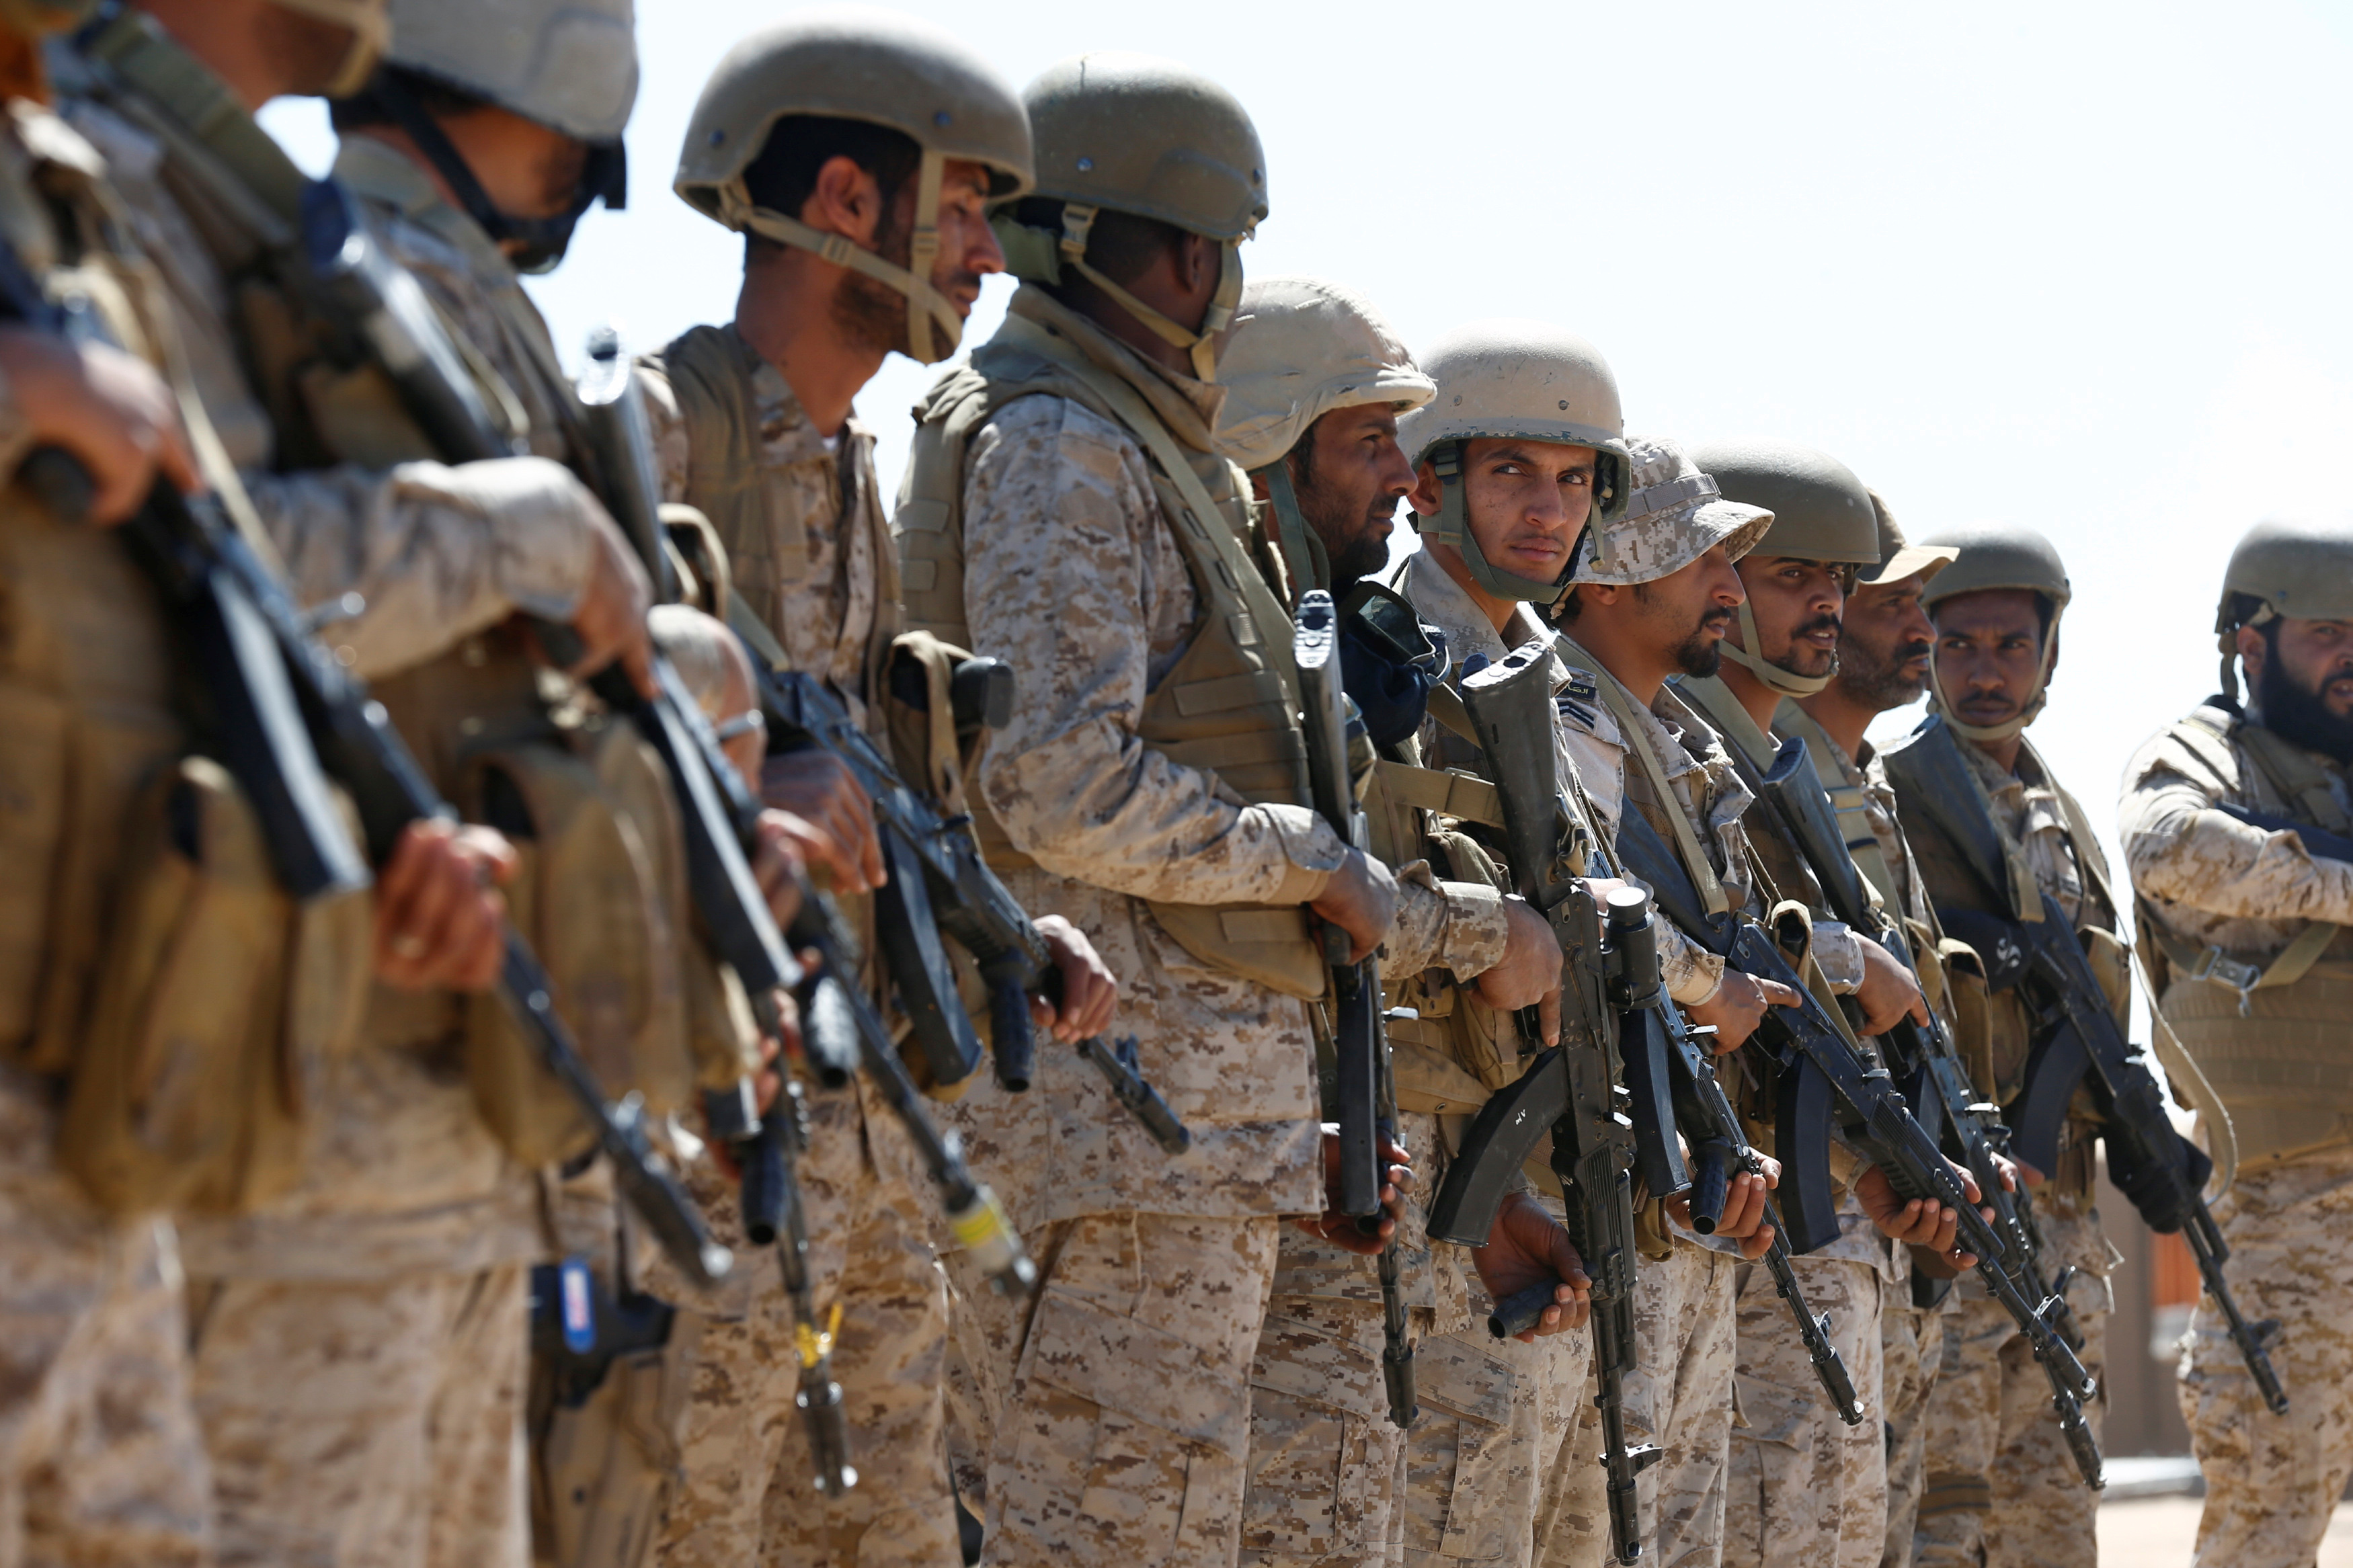 Yemen after a Saudi withdrawal: How much would change?